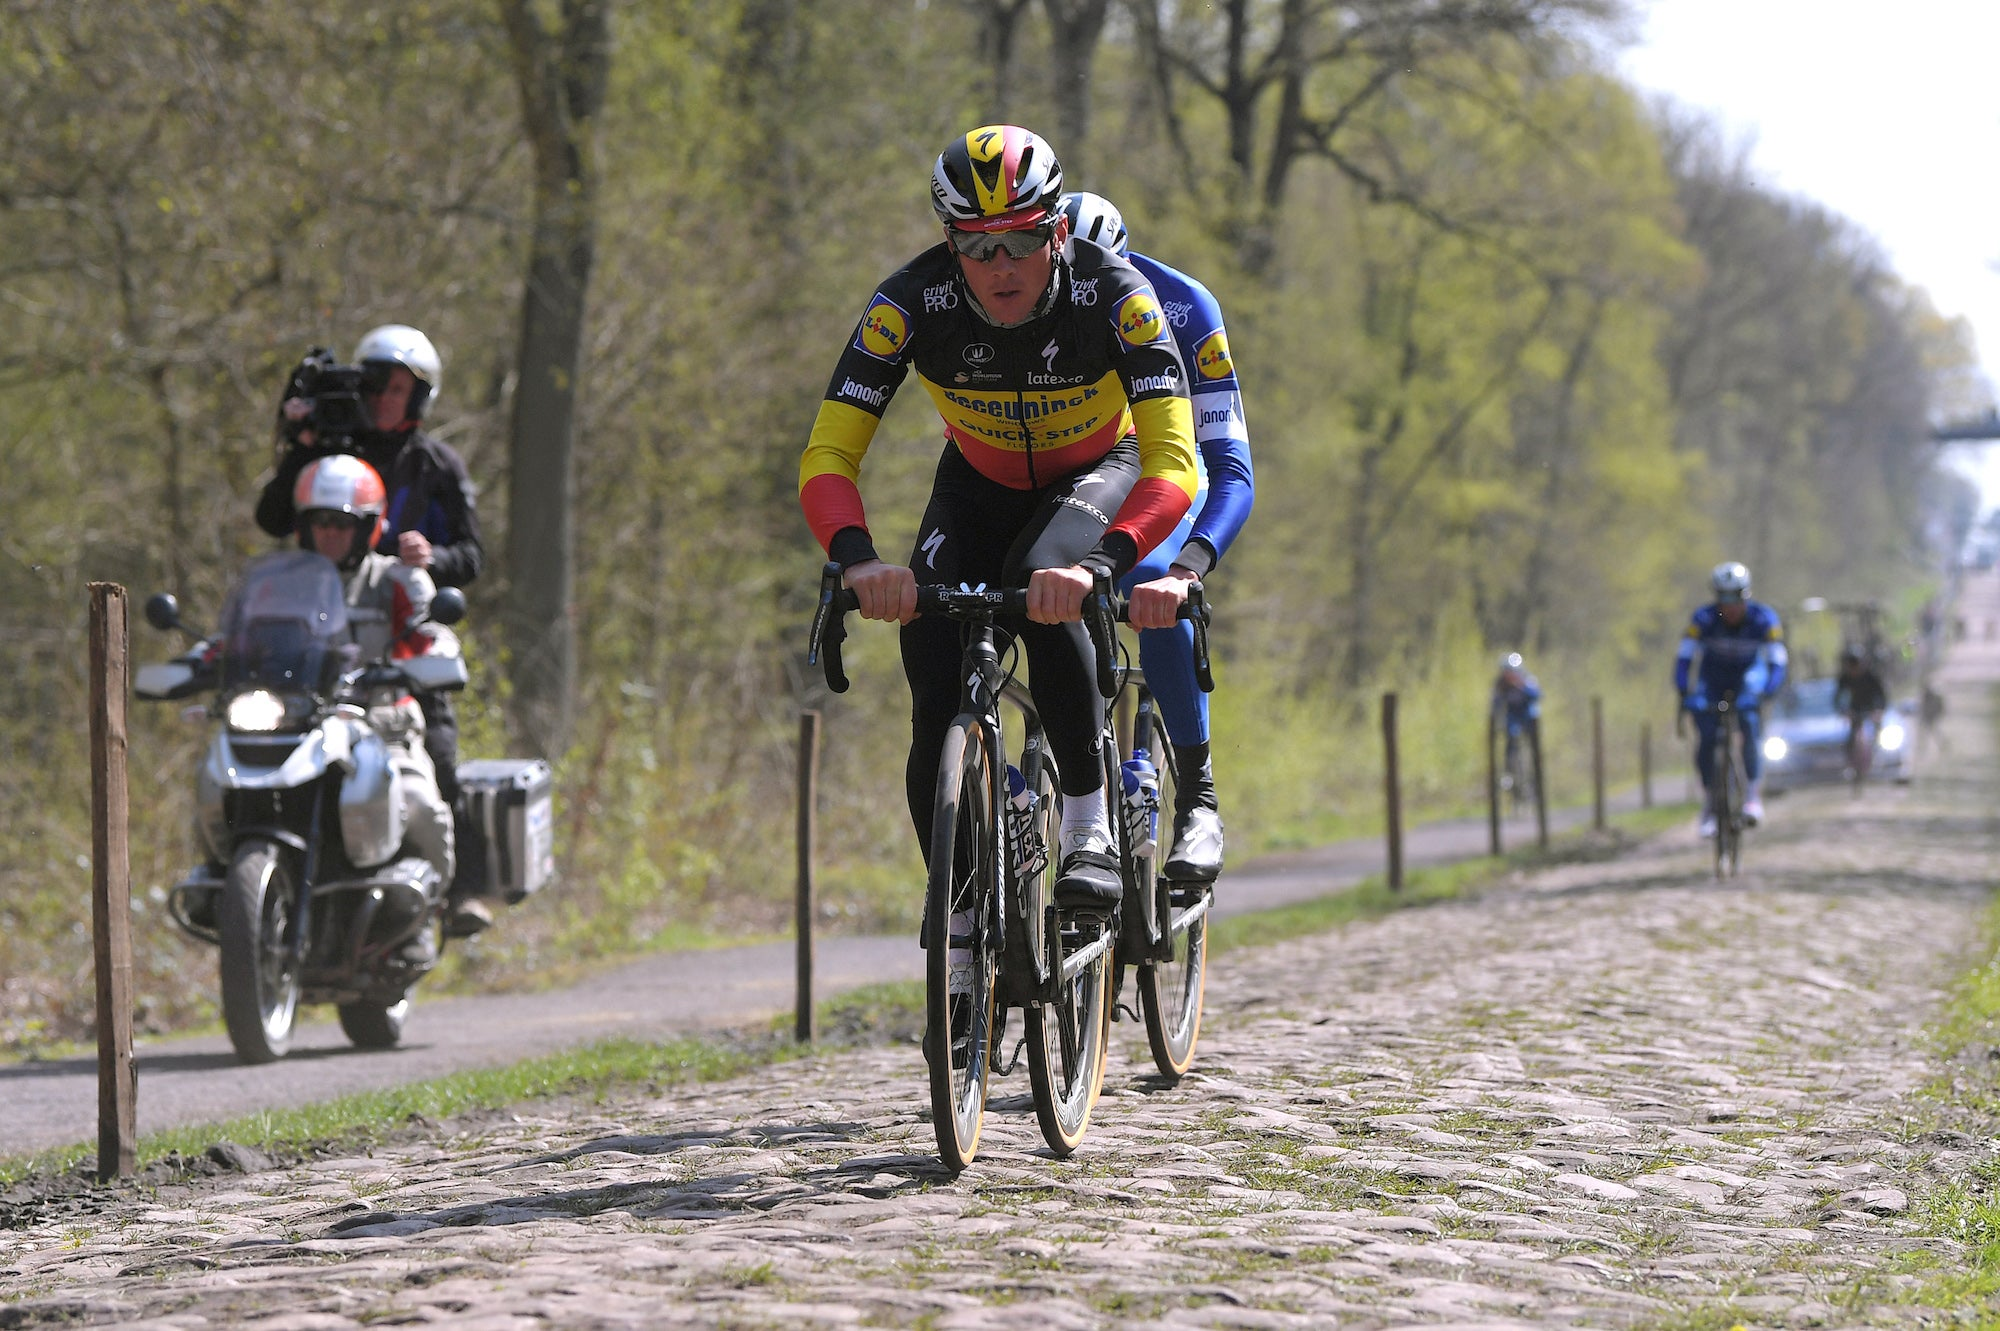 Pathfinder At Tire Review >> Lampaert: 'I'd rather win Roubaix than Flanders